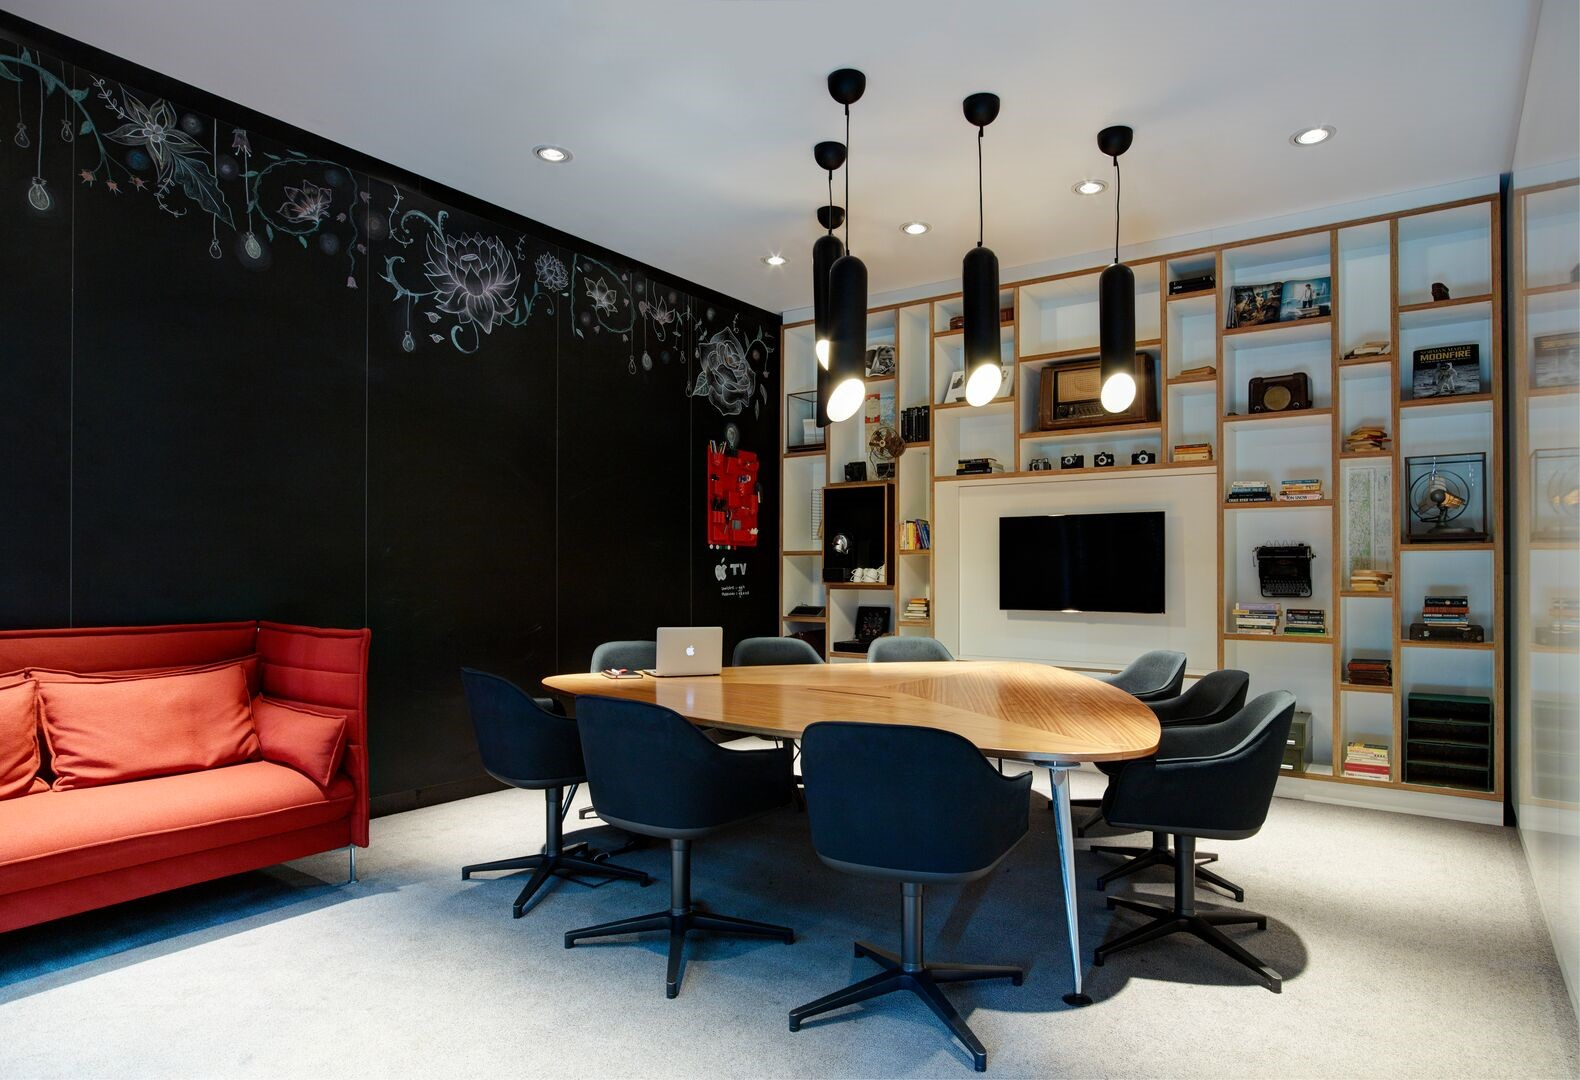 Meeting Rooms at citizenM Glasgow, citizenM Glasgow hotel